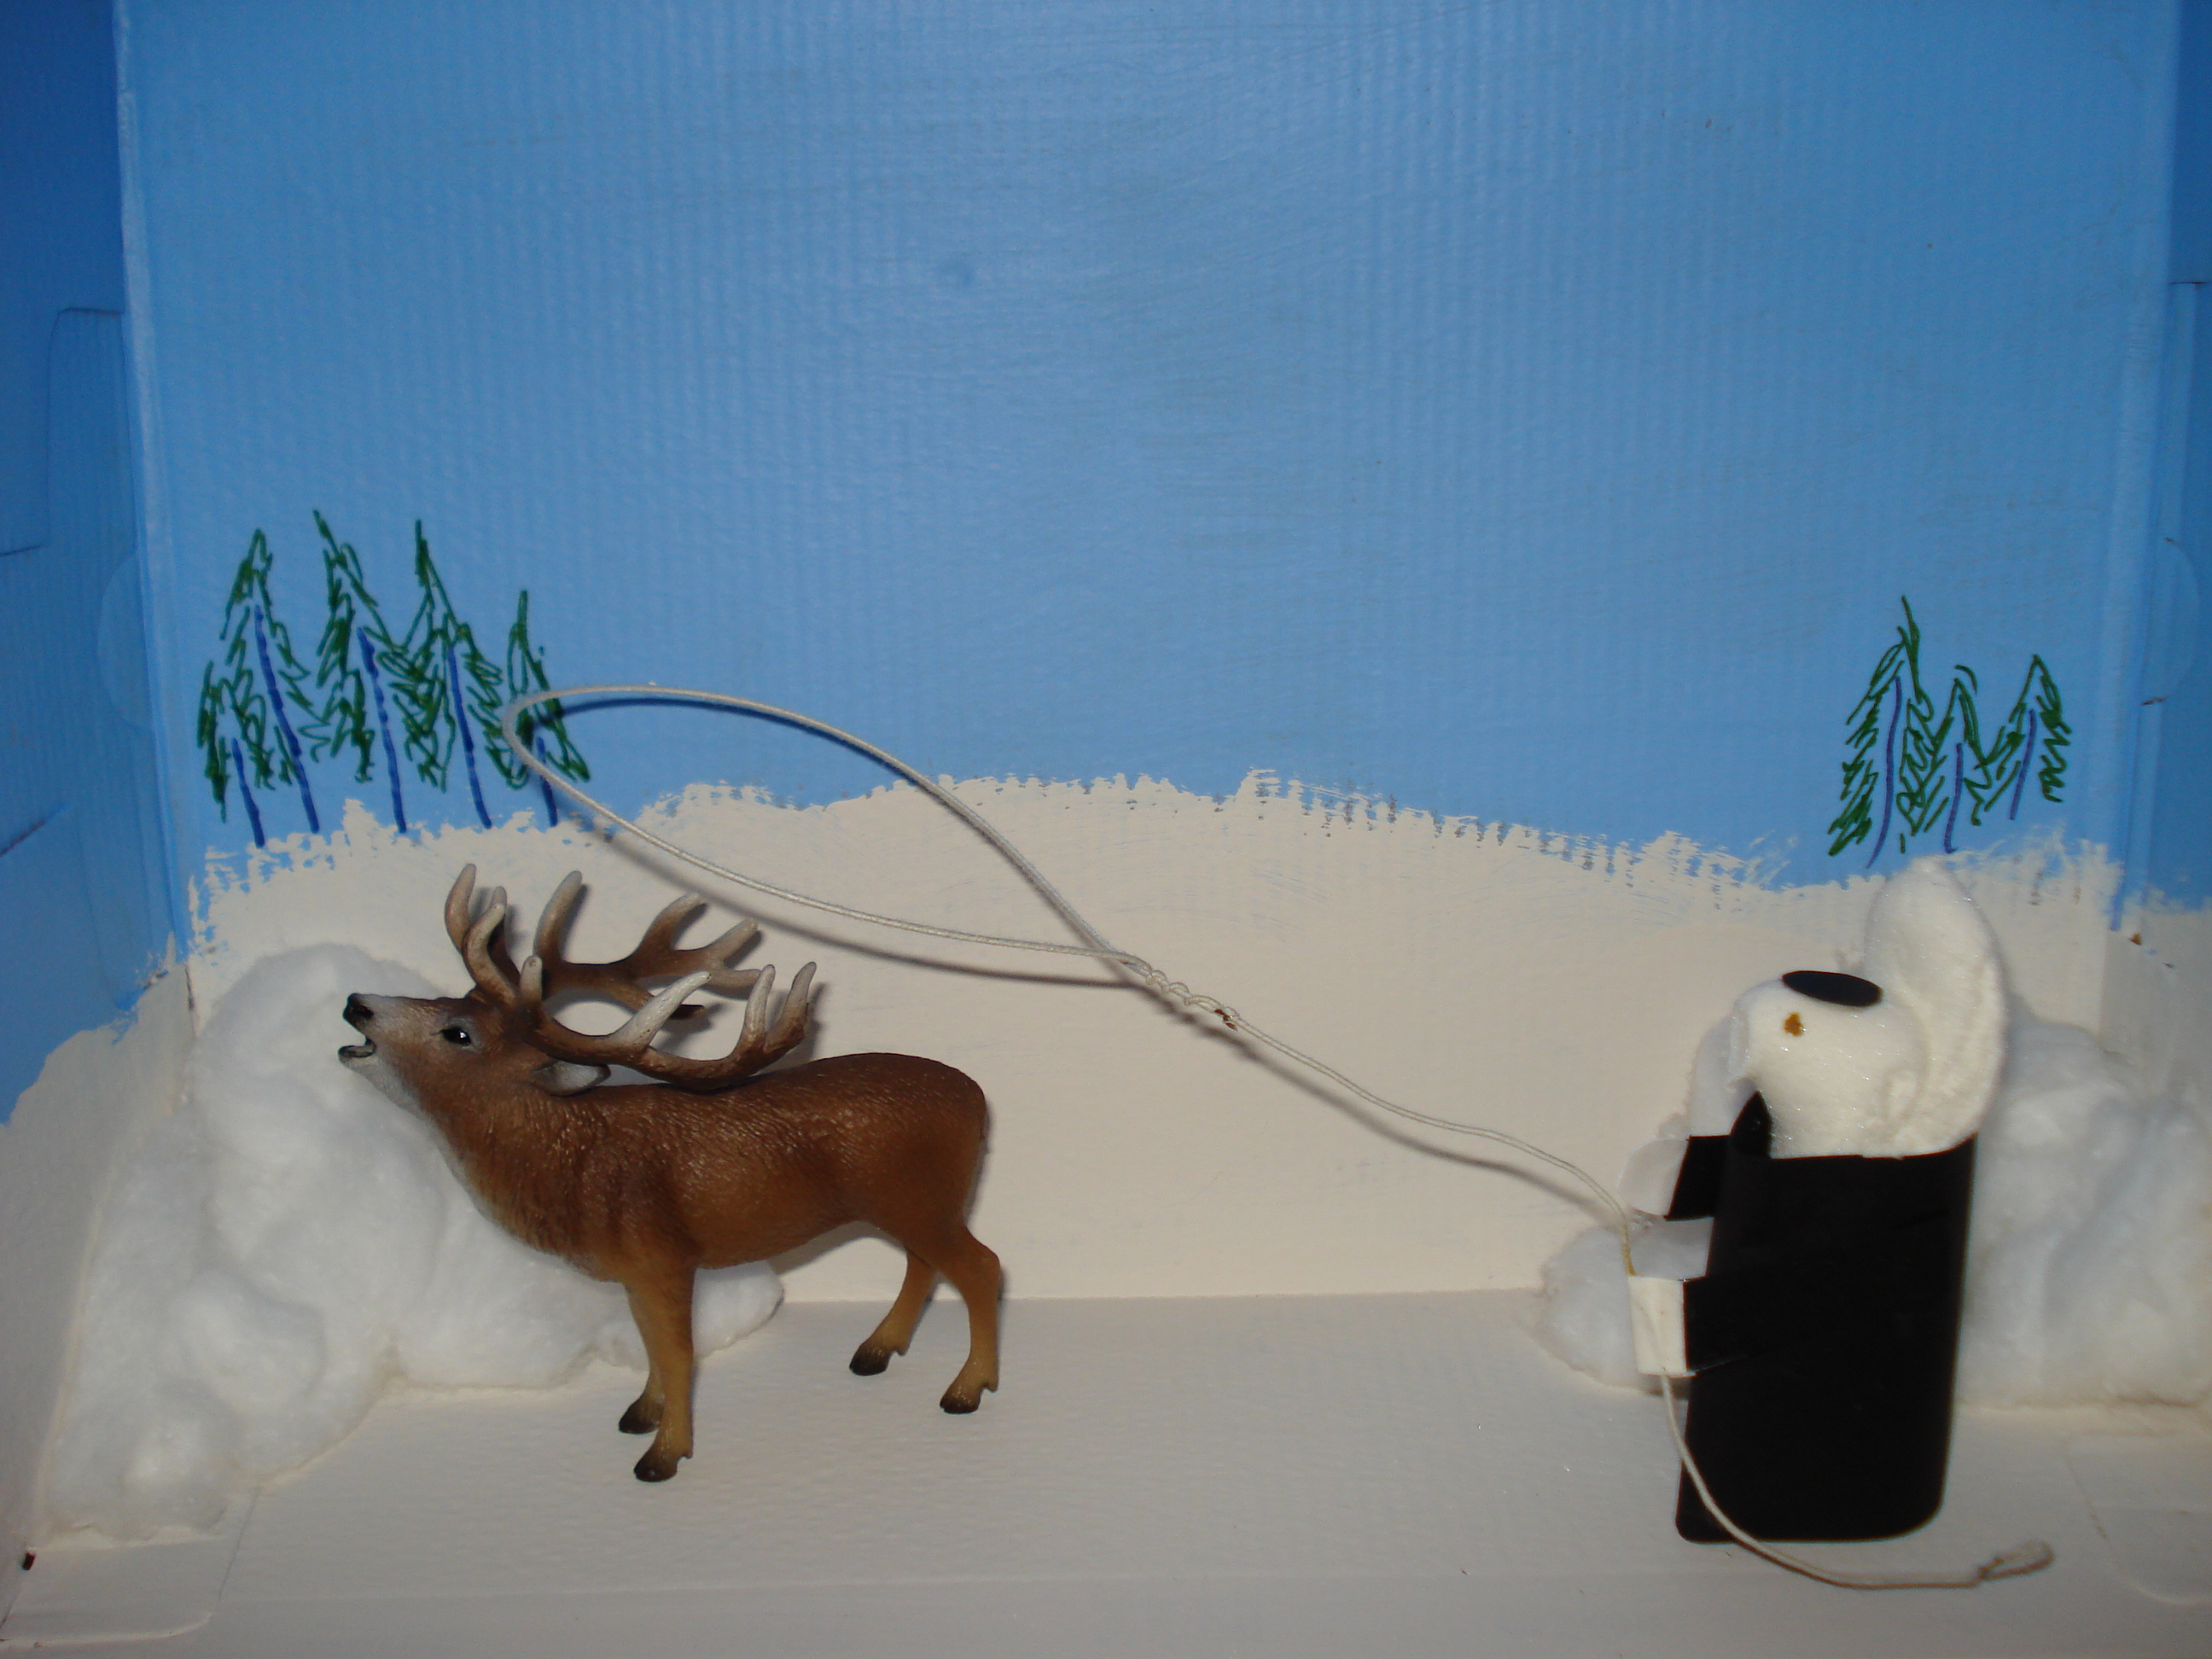 Sample Peep diorama: Father Pierz Trying to Capture an Elk